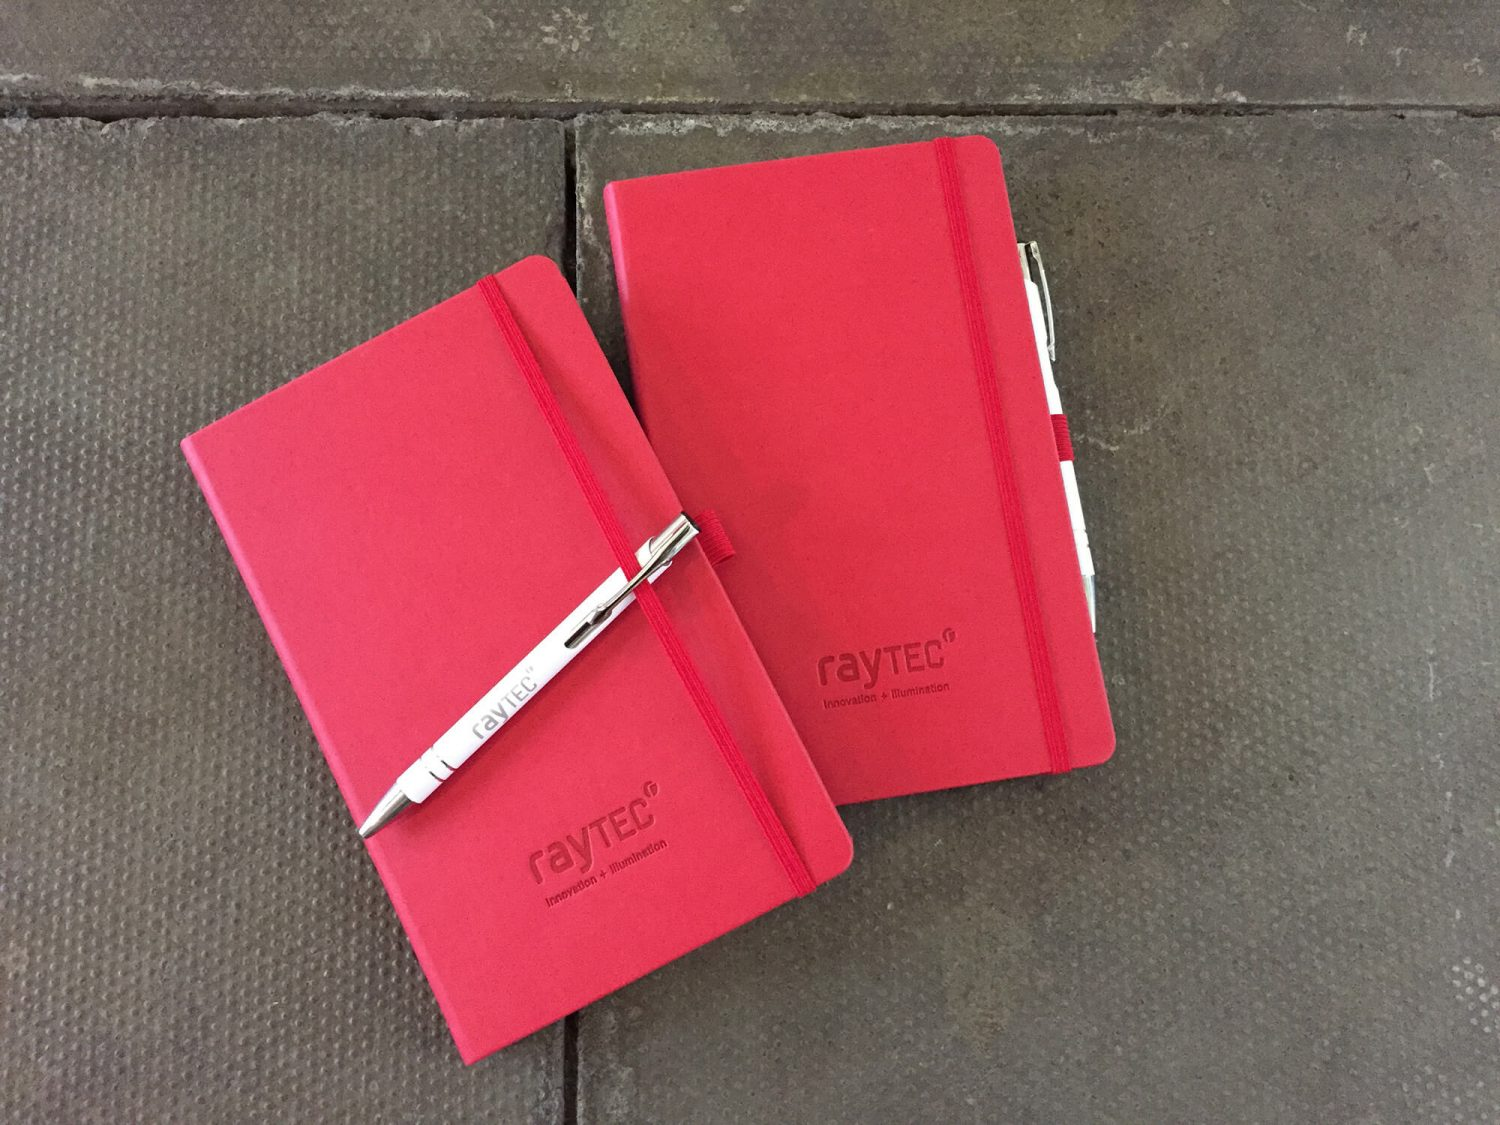 Raytec Branded Notebook